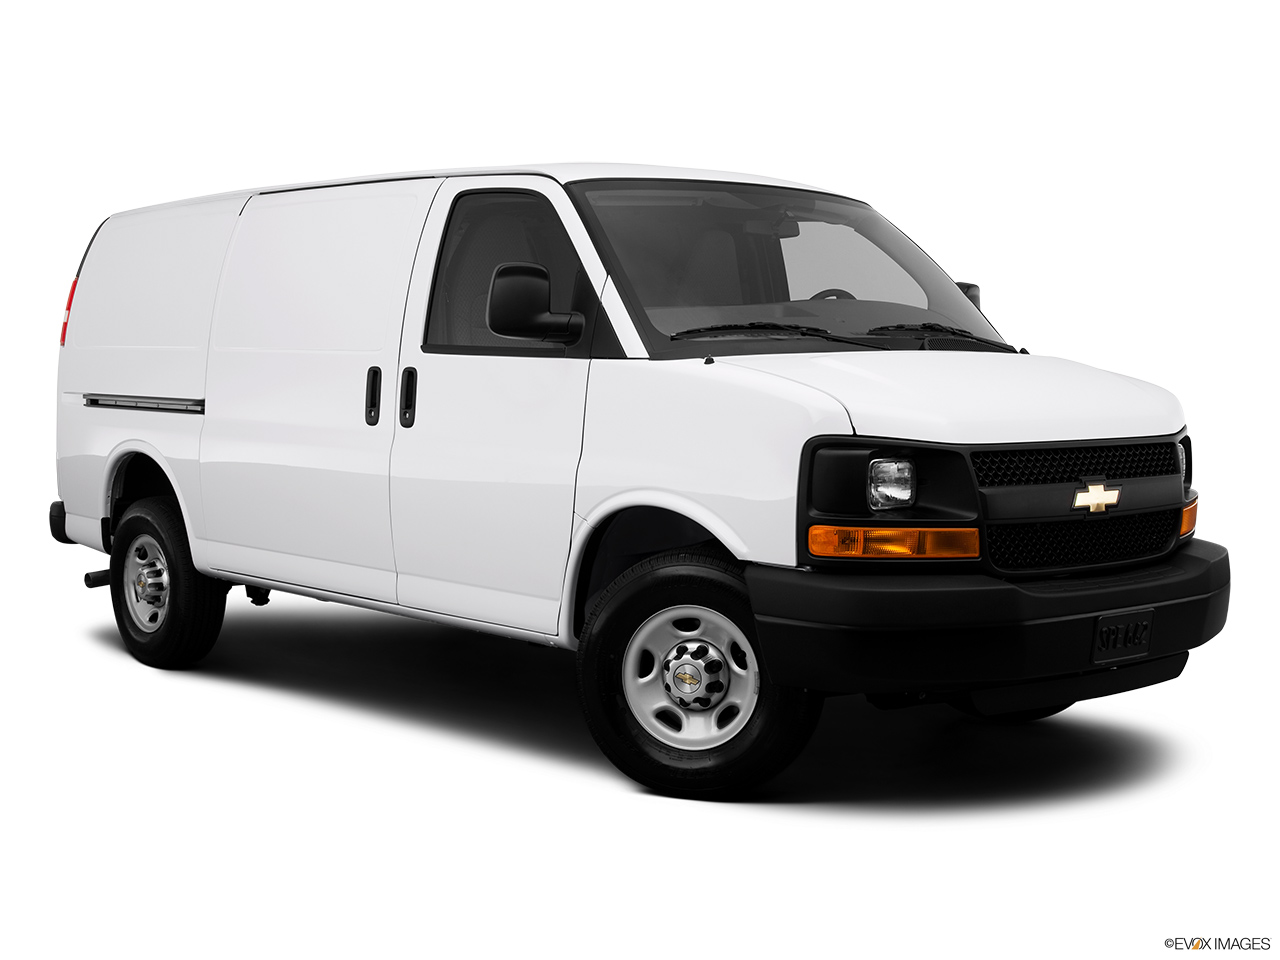 All Chevy 2014 chevy express : 8281_st1280_159.jpg